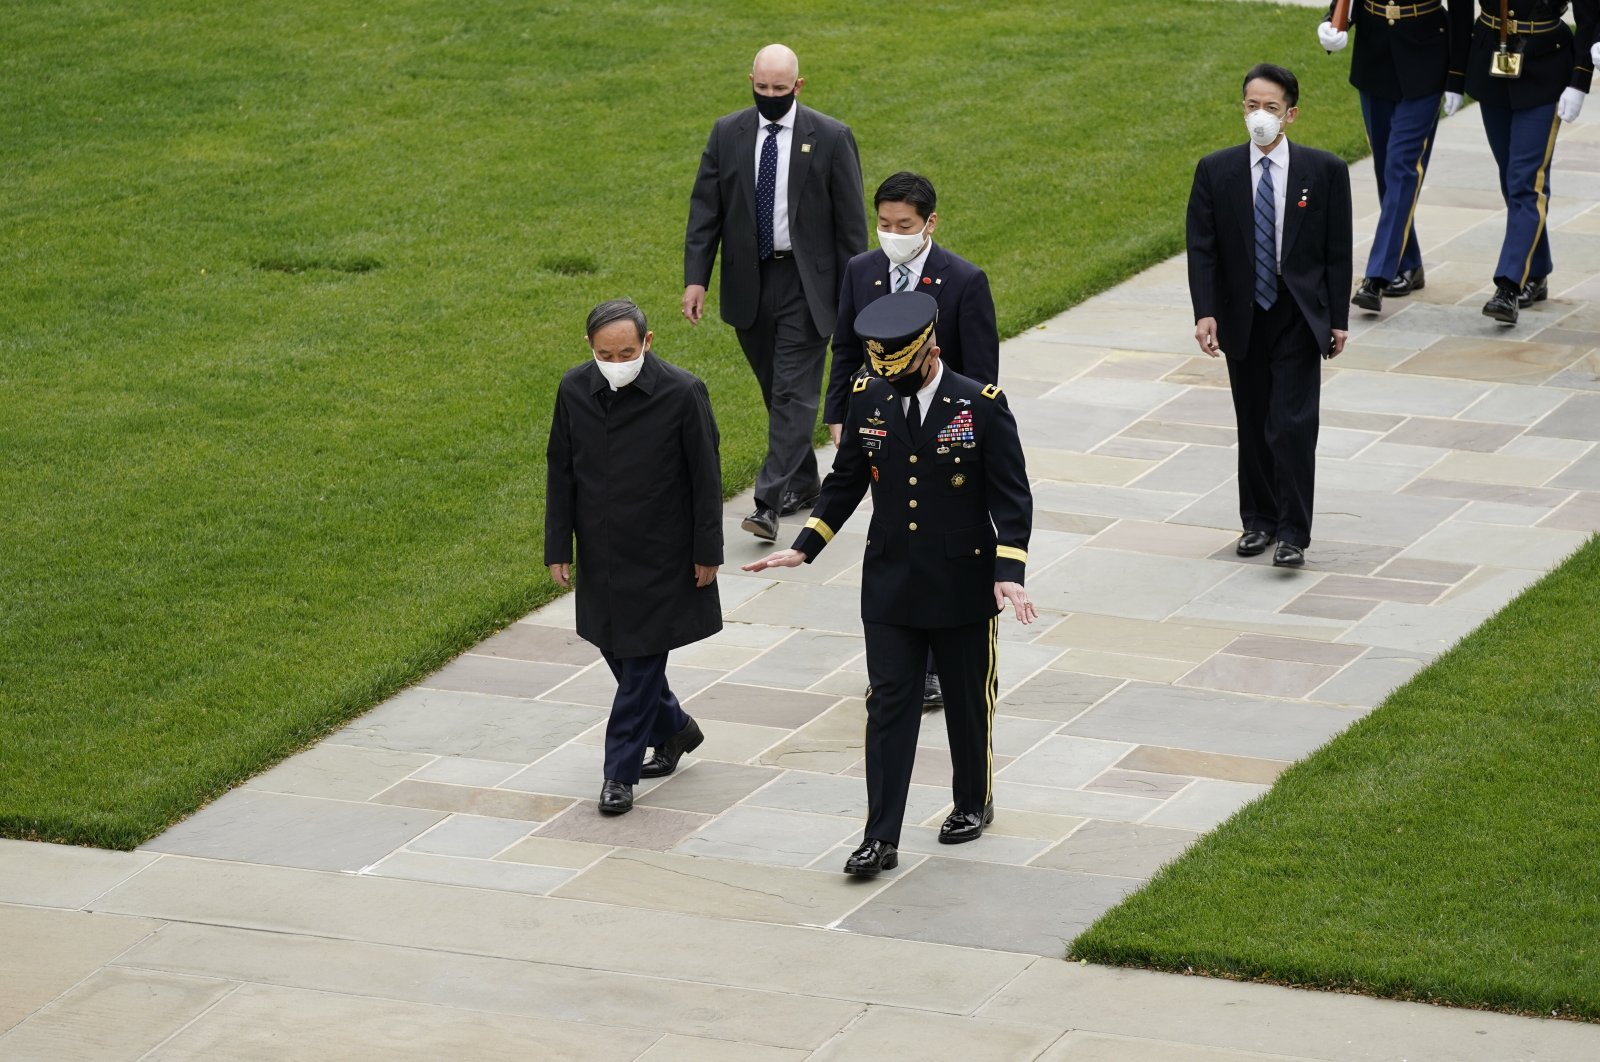 Japanese Prime Minister Yoshihide Suga at the Tomb of the Unknown Soldier for a wreath laying ceremony with U.S. Army Maj. Gen. Omar Jones at Arlington National Cemetery in Arlington, Virginia, U.S., April 16, 2021. (AP Photo)